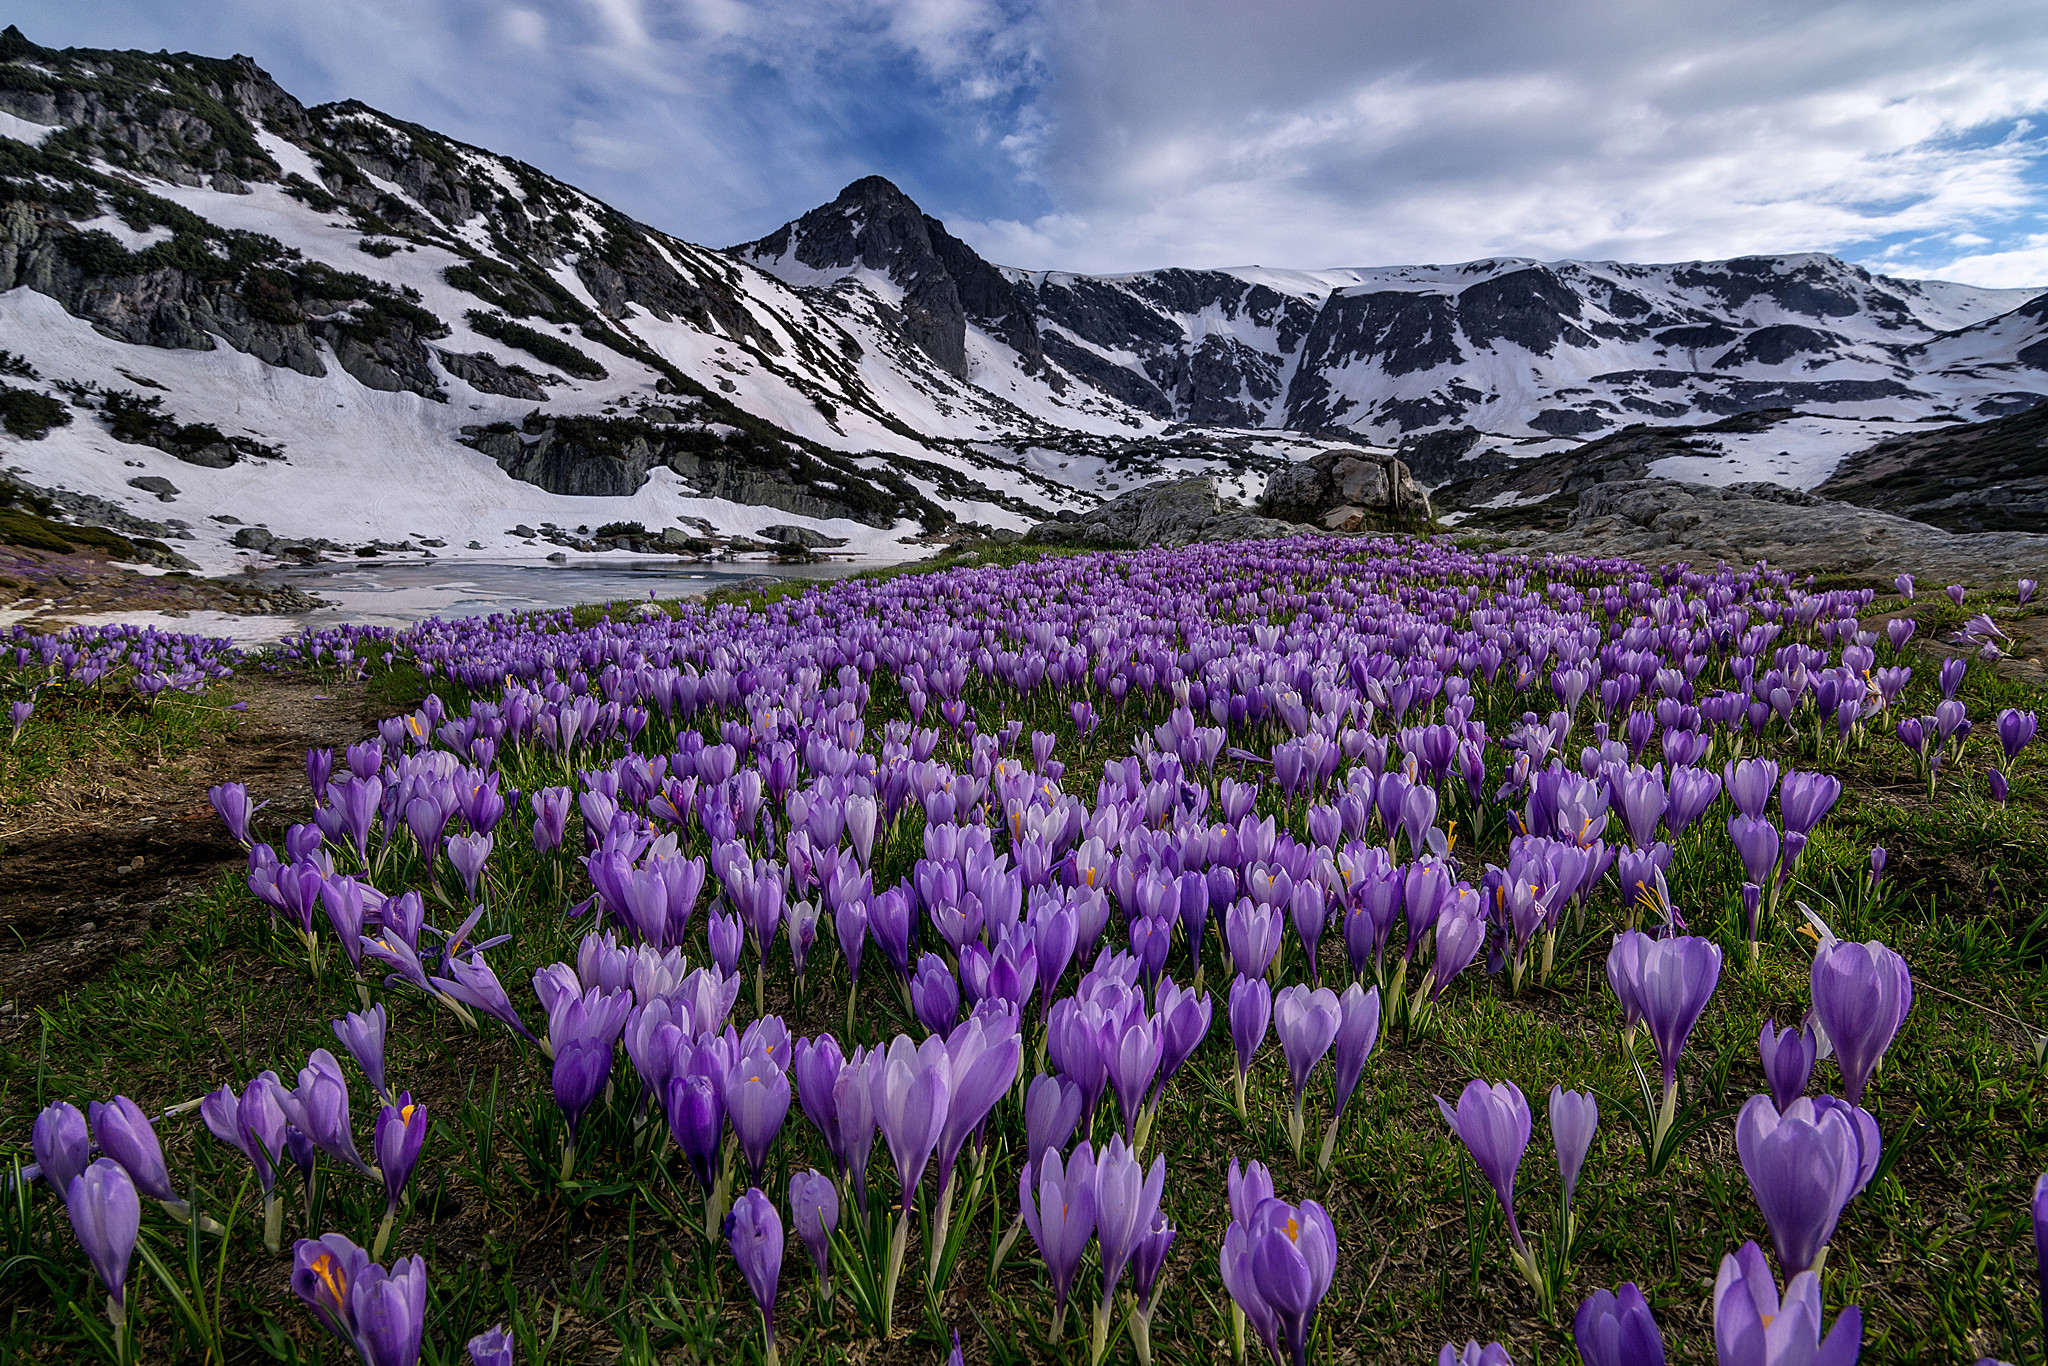 Crocuses blooming in the mountains in spring hd wallpaper for Paesaggi di primavera per desktop